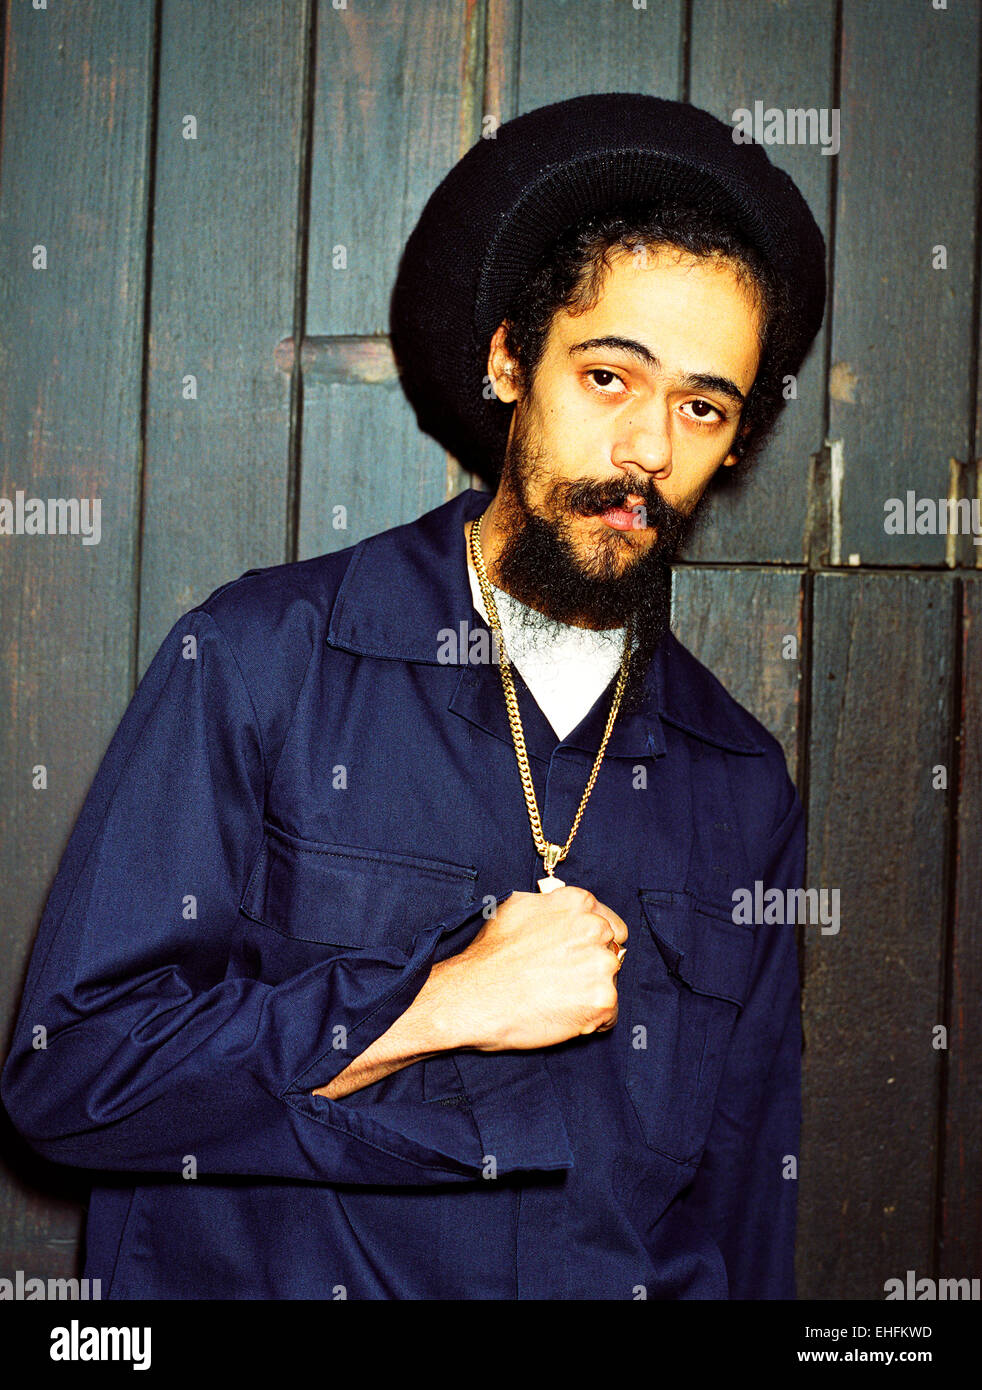 Portrait of damian marley stock photo 79635513 alamy portrait of damian marley thecheapjerseys Gallery